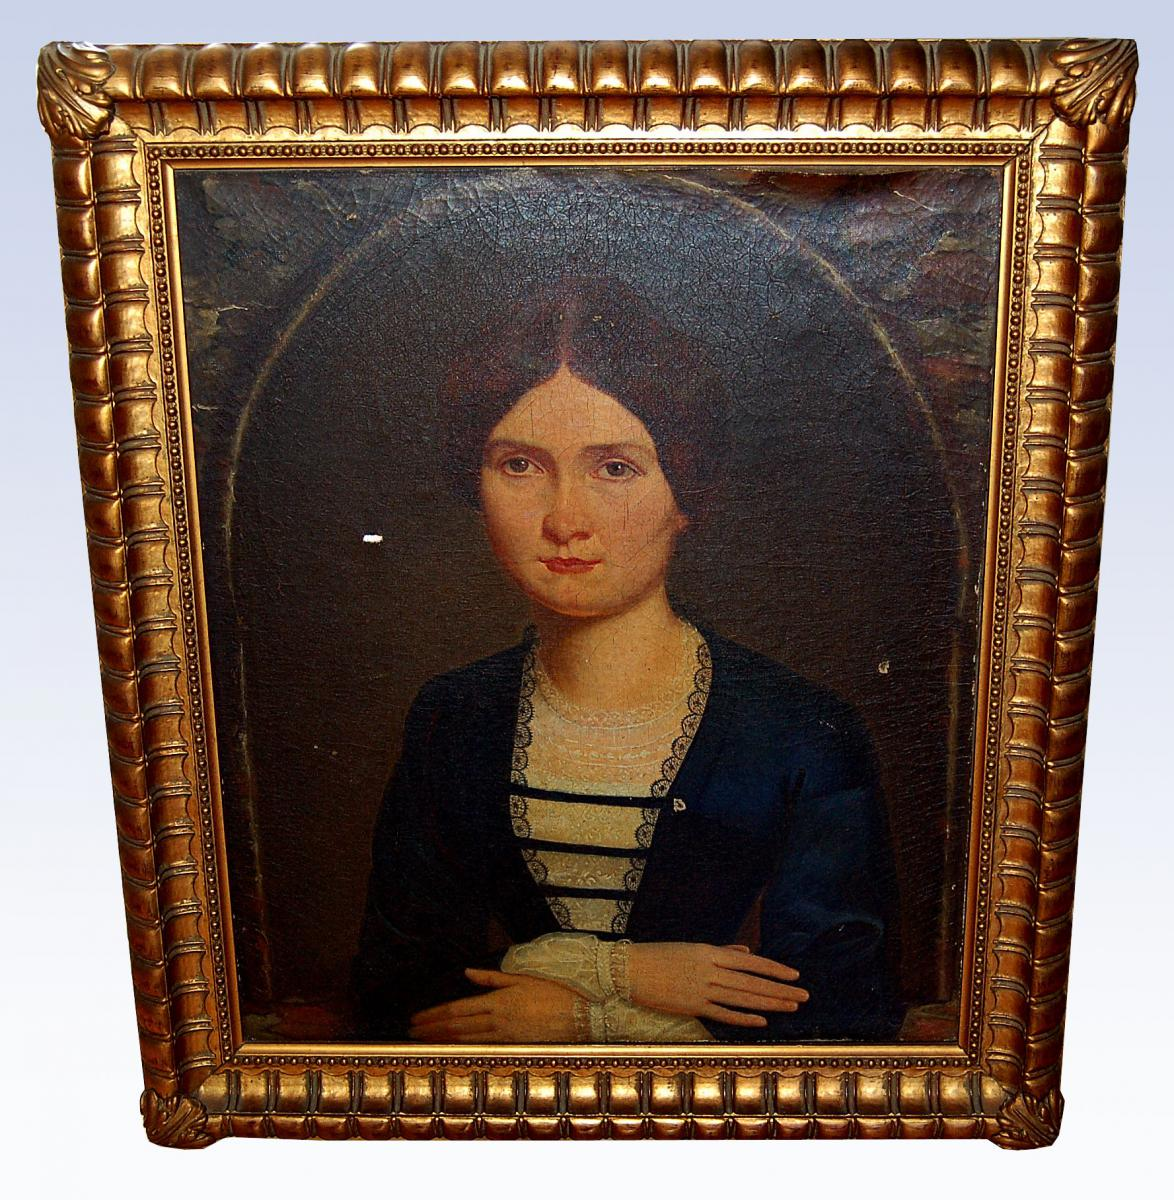 French Ecole Du XIX, Hst, Table, Portrait Of Woman